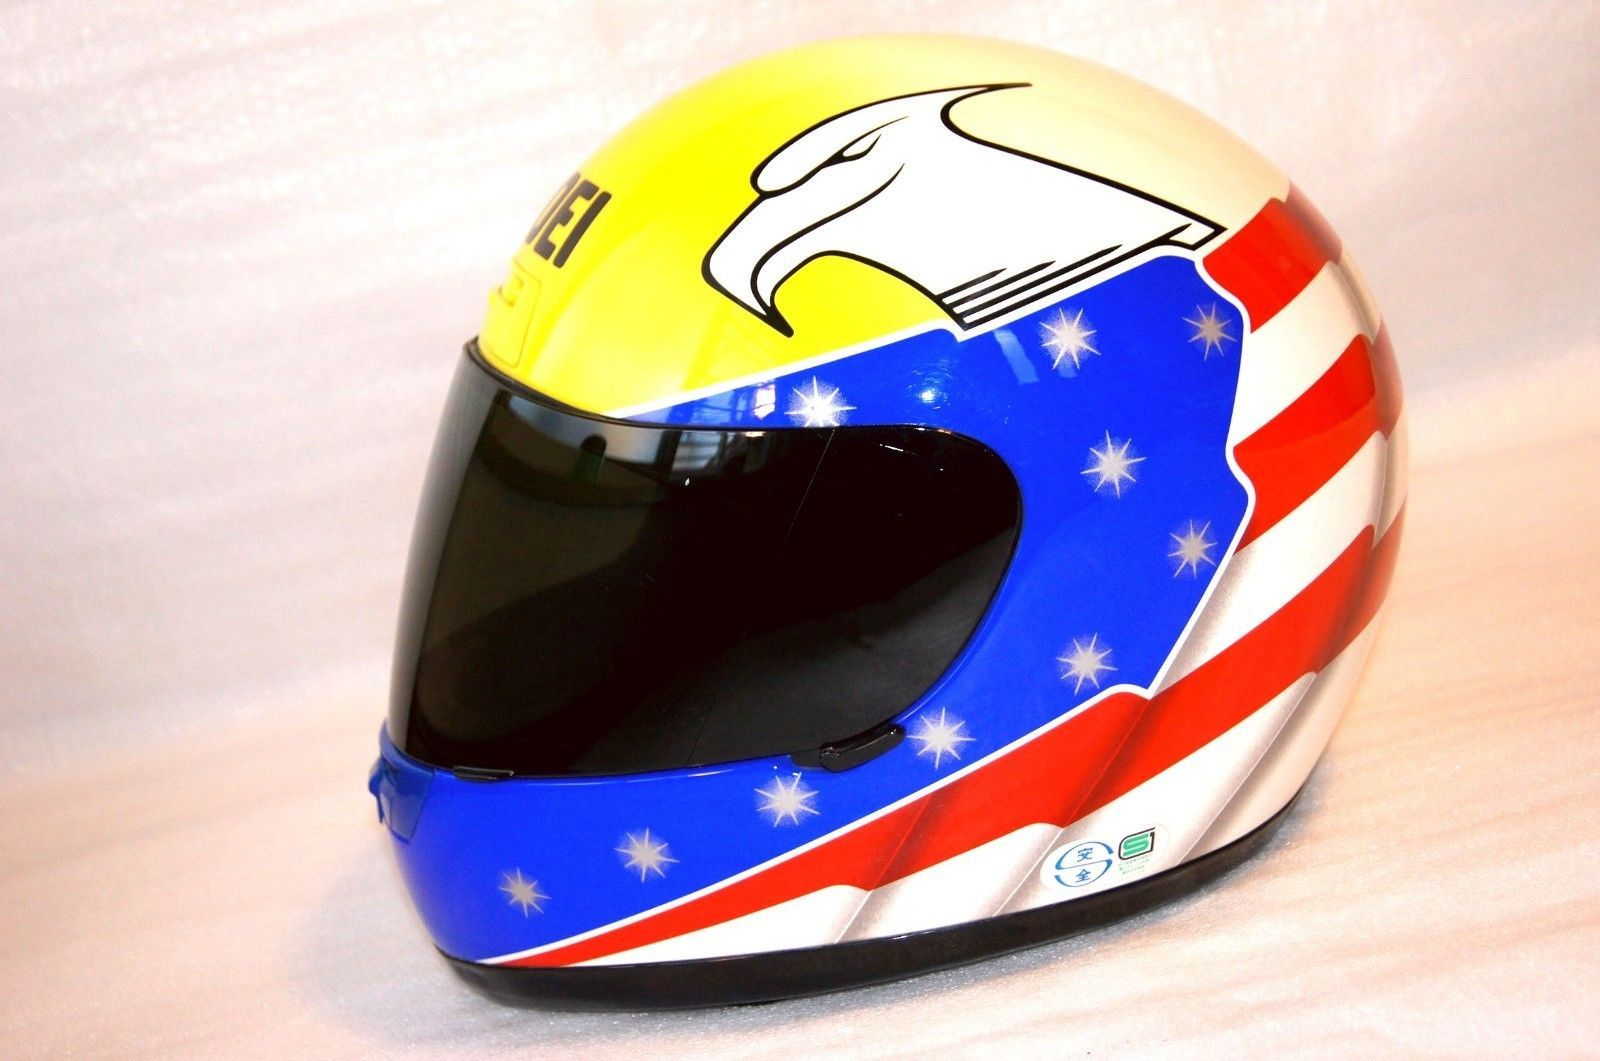 Details About Shoei Racing Helmet X 8 John Kocinski Replica